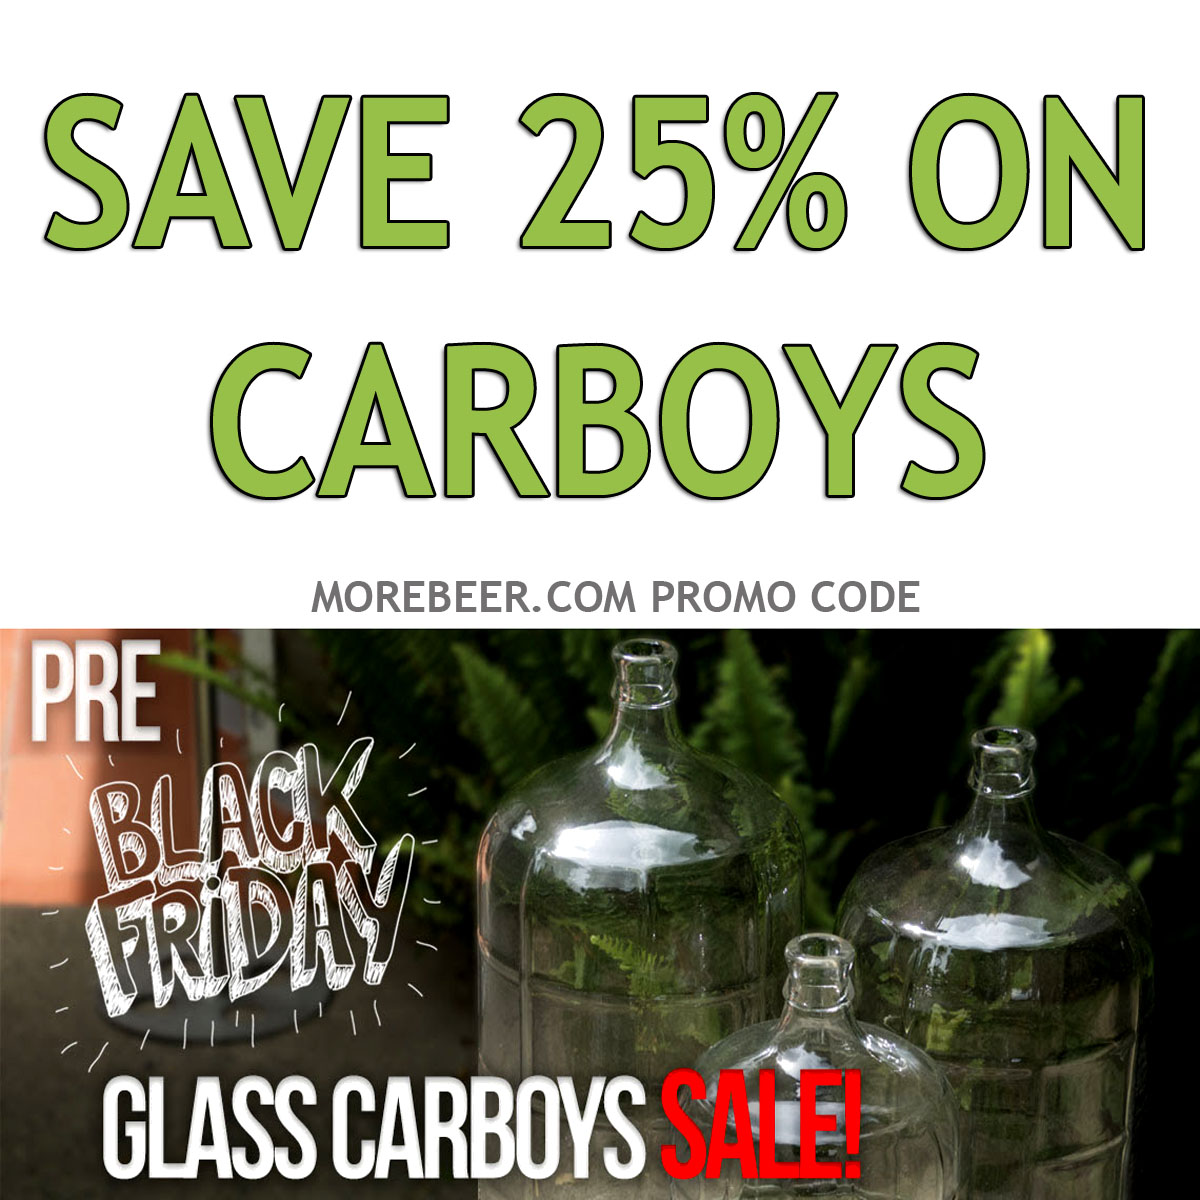 Save 25% On Carboys At MoreBeer.com Plus Free Shipping On Orders Over $59 Coupon Code